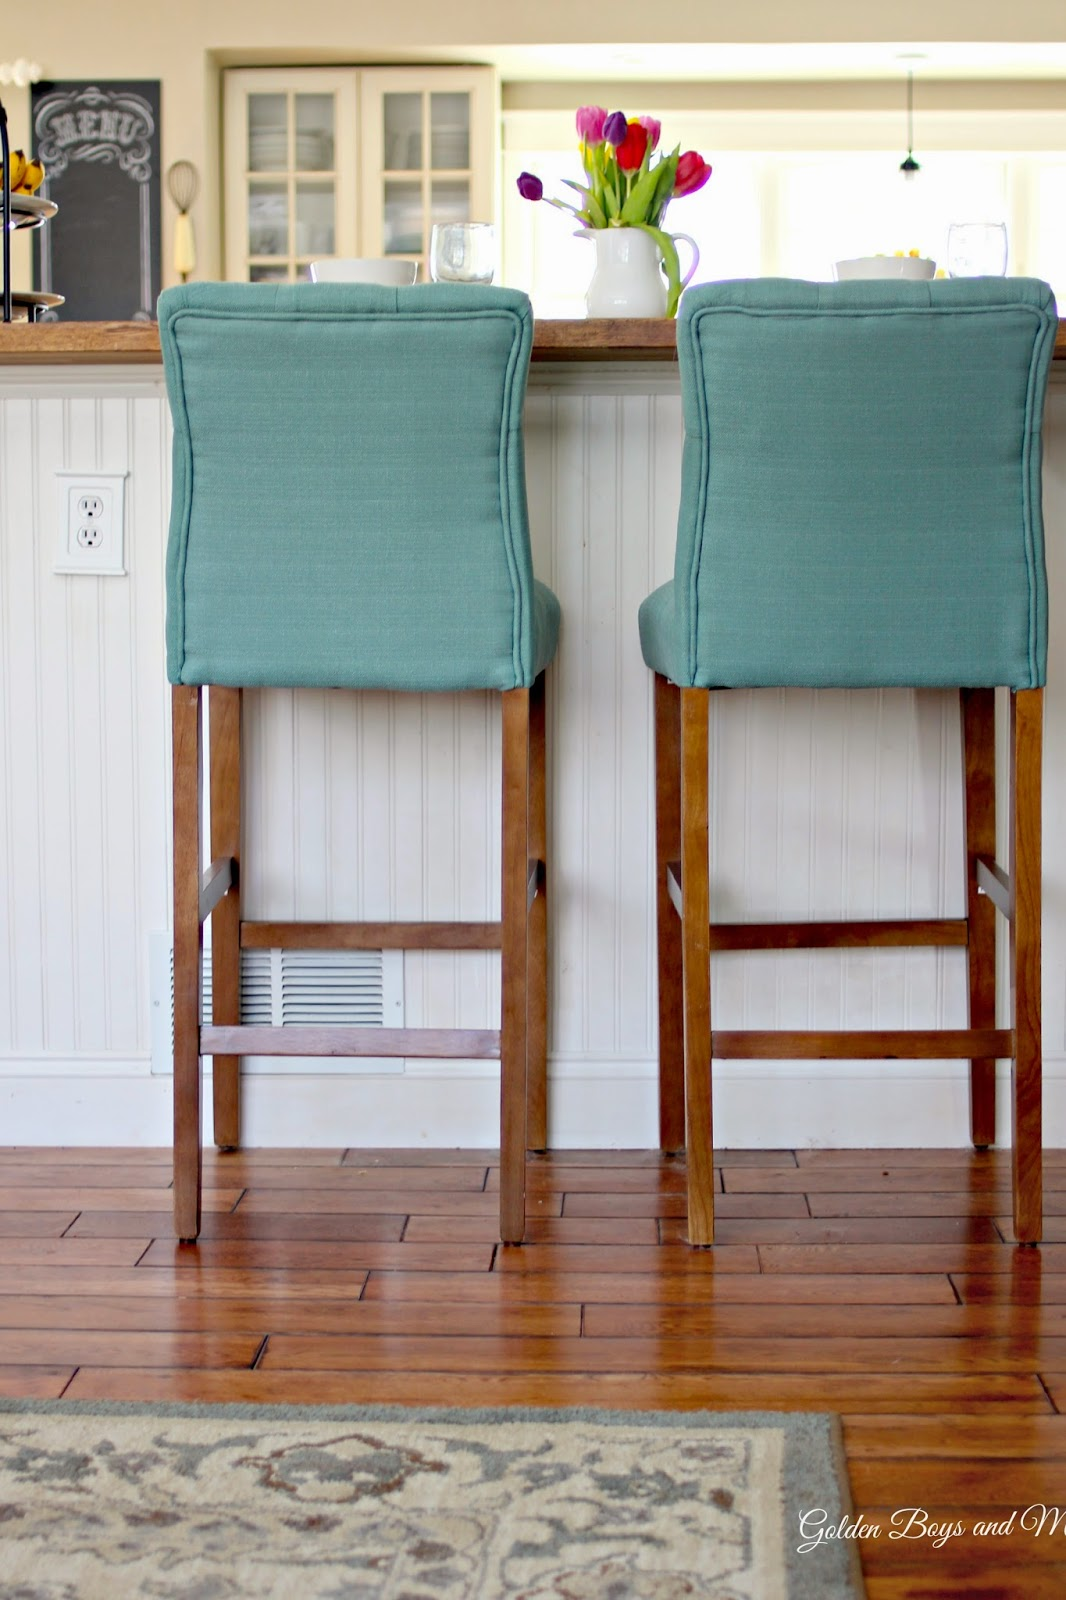 Target Threshold Tufted bar stools-www.goldenboysandme.com